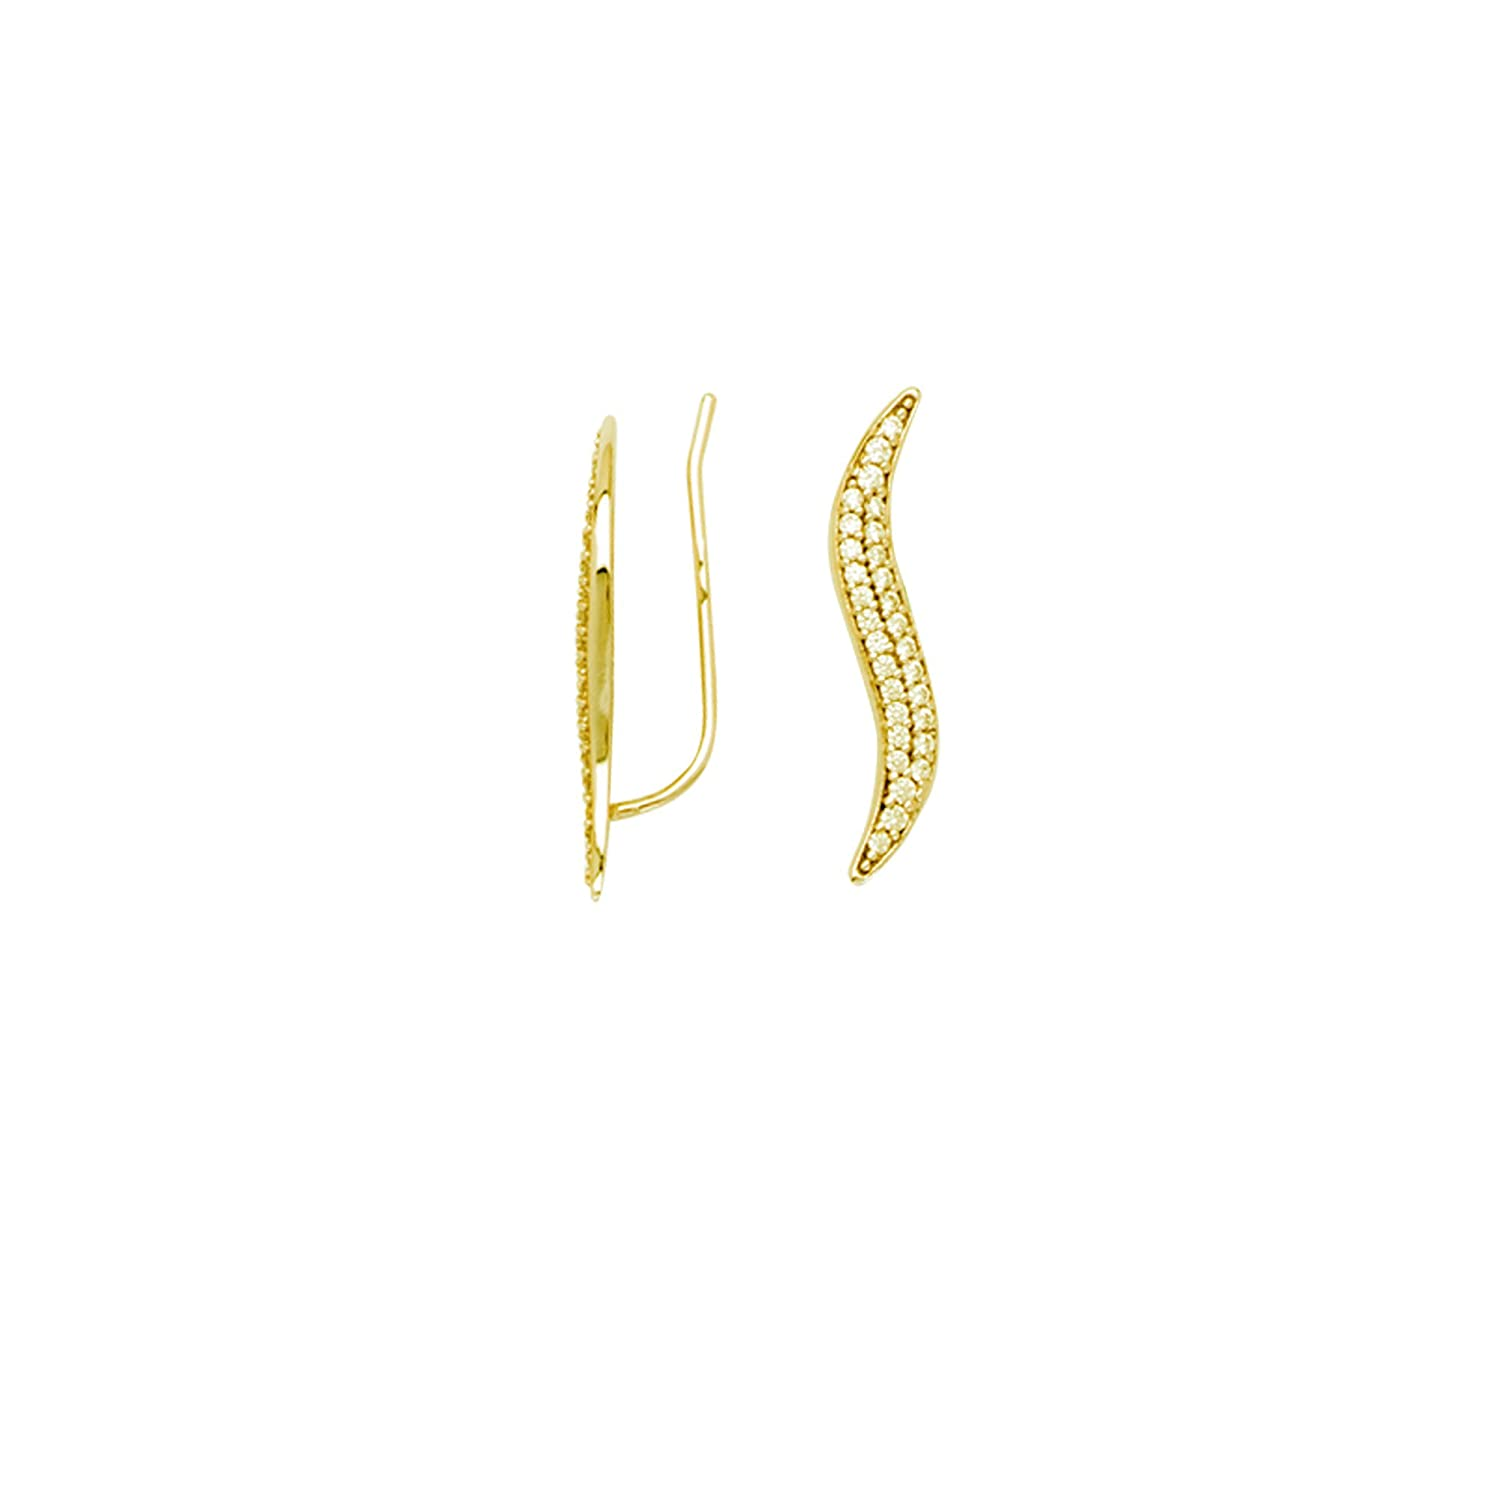 Earring Chest 14K Yellow Gold CZ Crawler Climber Earrings